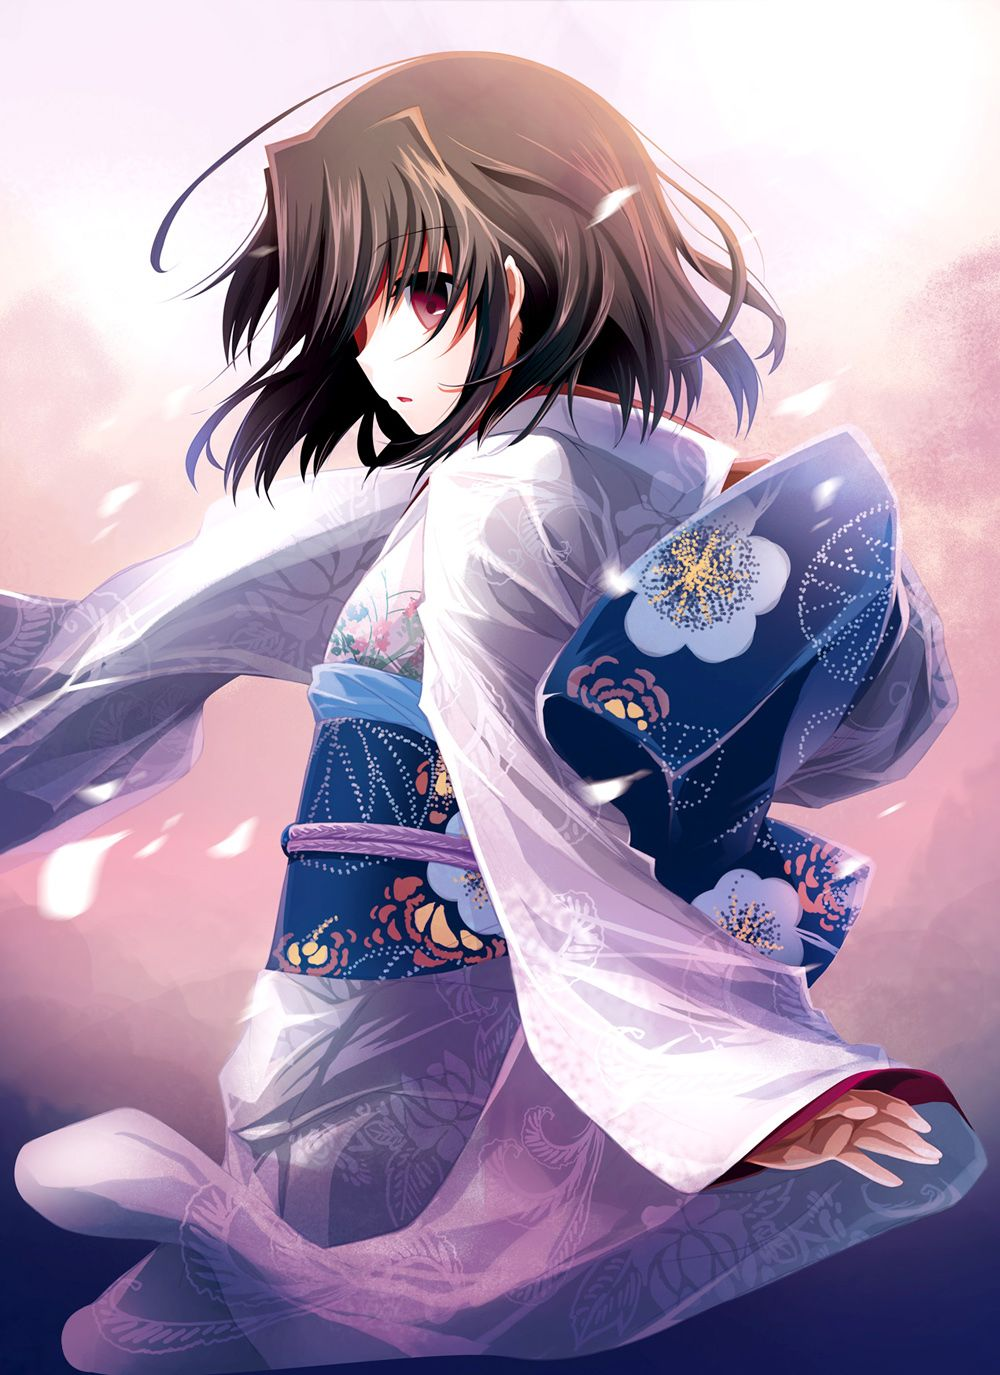 Animation Art Characters Japanese Anime Animation Art Characters Figure New No Box Kara No Kyoukai The Garden Of Sinners Shiki Ryougi Kimono Ver Other Anime Collectibles Zsco Iq